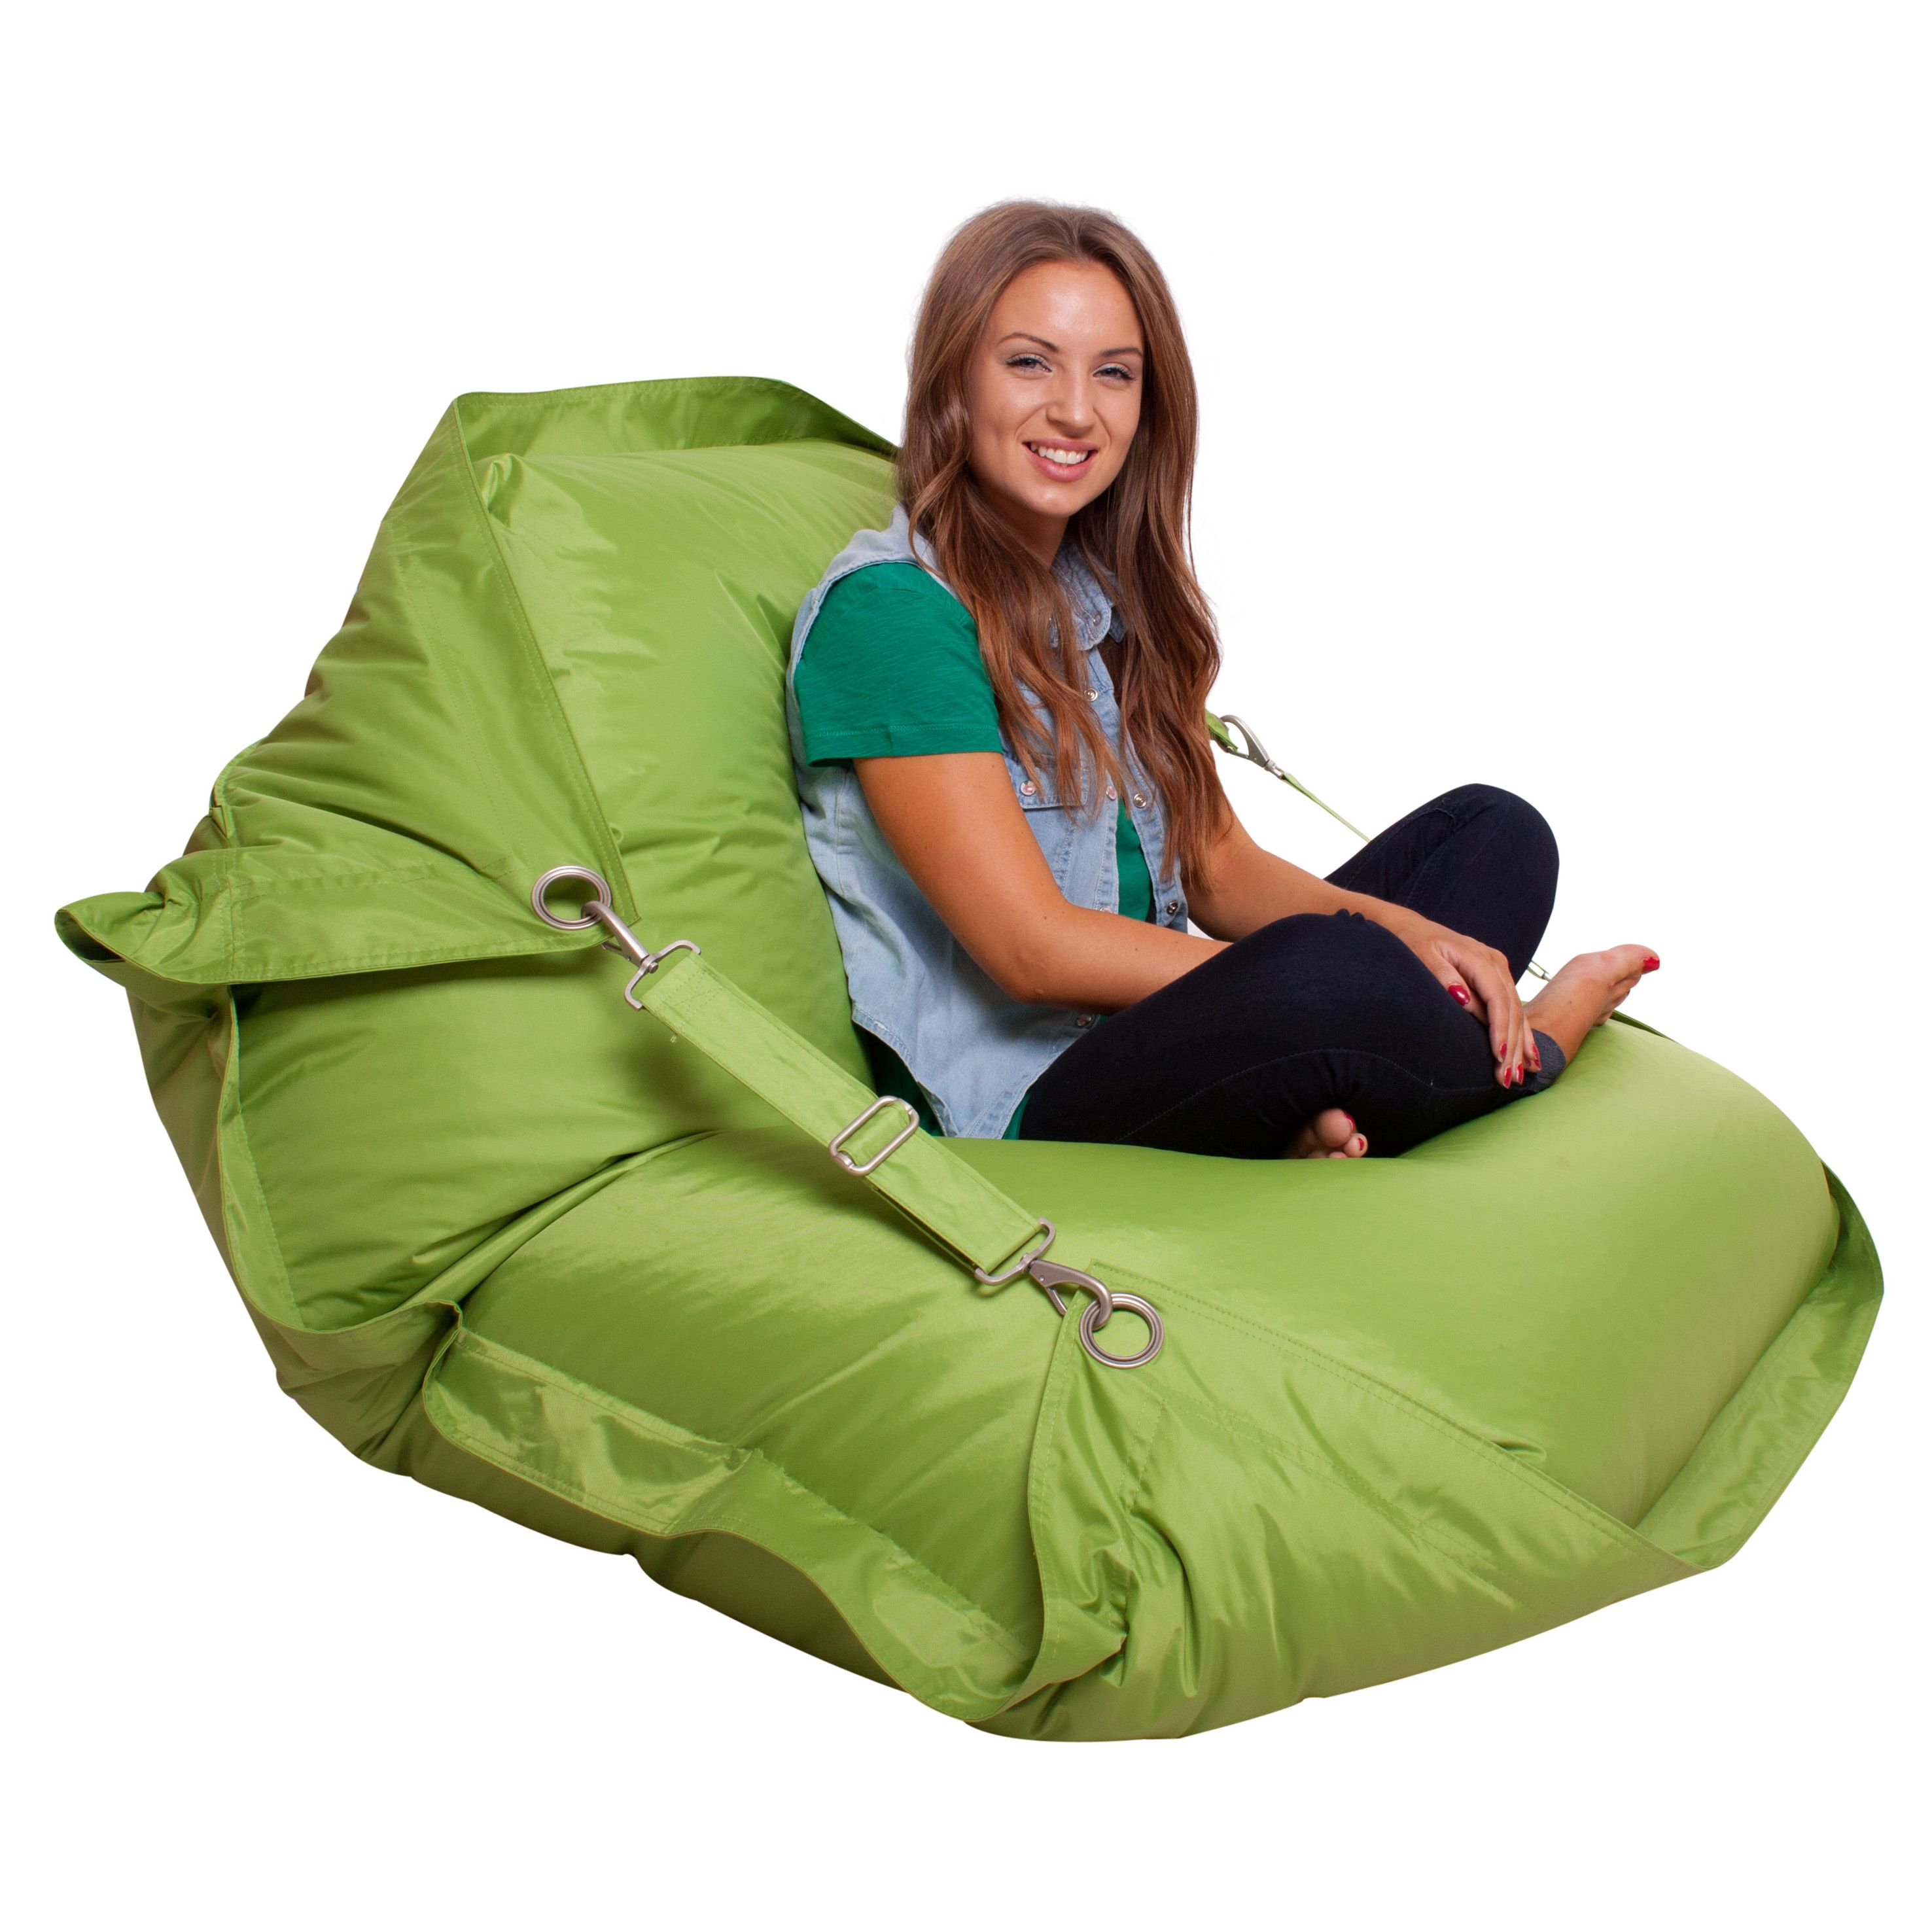 Strange Bazaar Bag Flex Giant Bean Bag In Lime For A Ocoug Best Dining Table And Chair Ideas Images Ocougorg